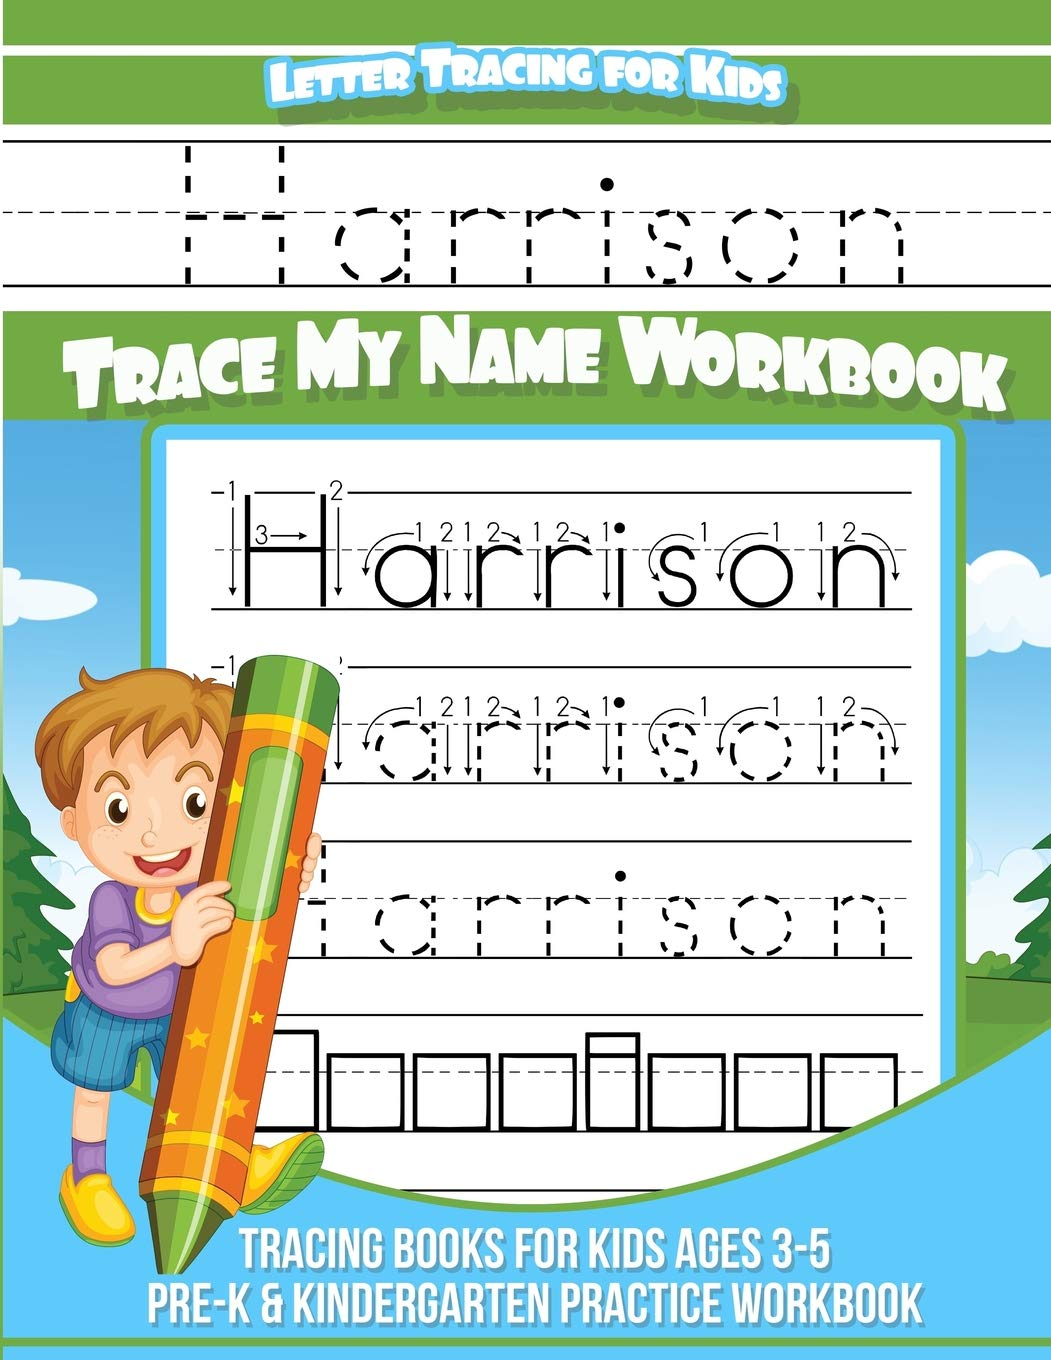 Harrison Letter Tracing for Kids Trace my Name Workbook: Tracing Books for Kids ages 3 - 5 Pre-K & Kindergarten Practice Workbook (Personalized Children's Trace Name Books) (Volume 1)